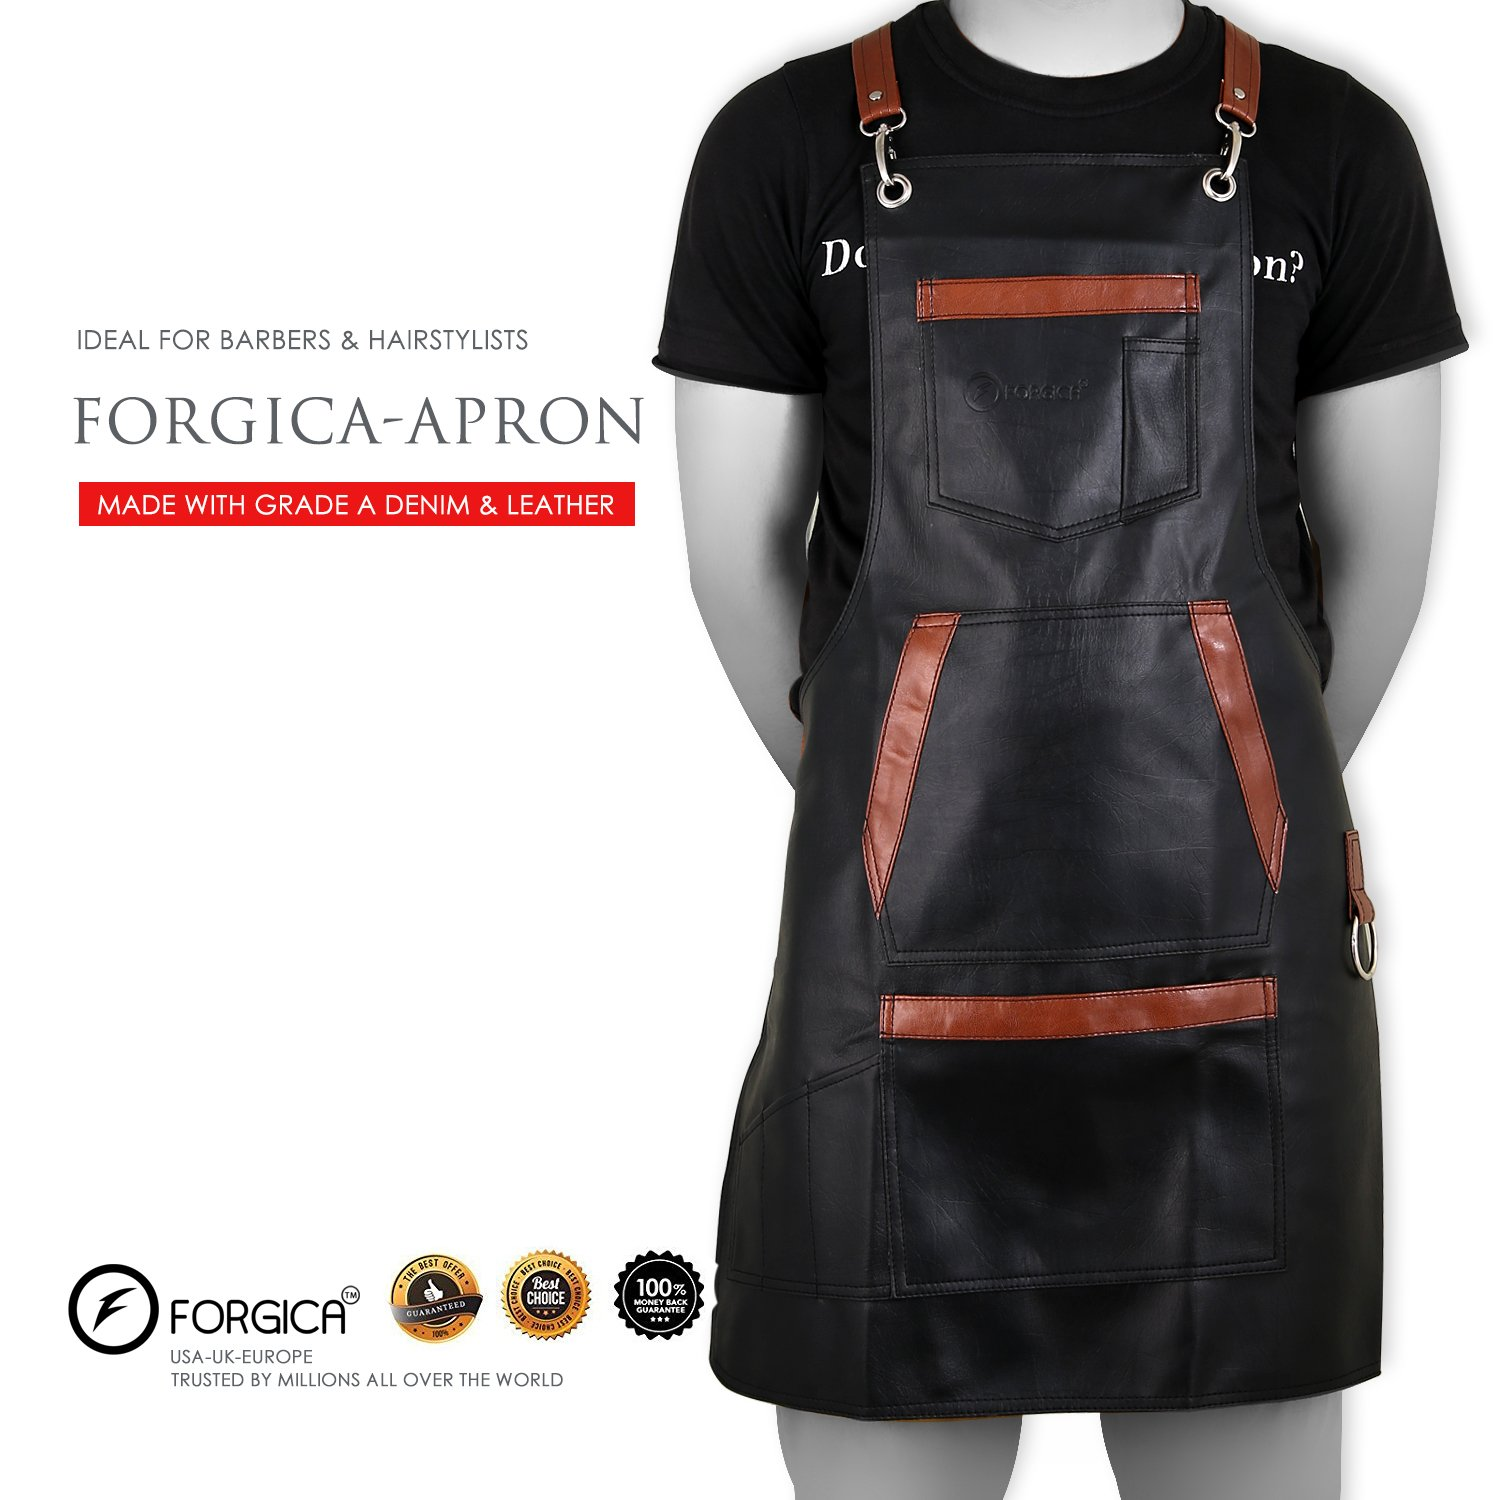 FORGICA Professional PU Leather Apron Hair Cutting Aprons For Men Hairdressing Aprons Barber Cape for Salon Hairstylist - Multi-use Adjustable 8 pockets - Gifts Heavy Duty Premium Quality Black Apron by Forgica